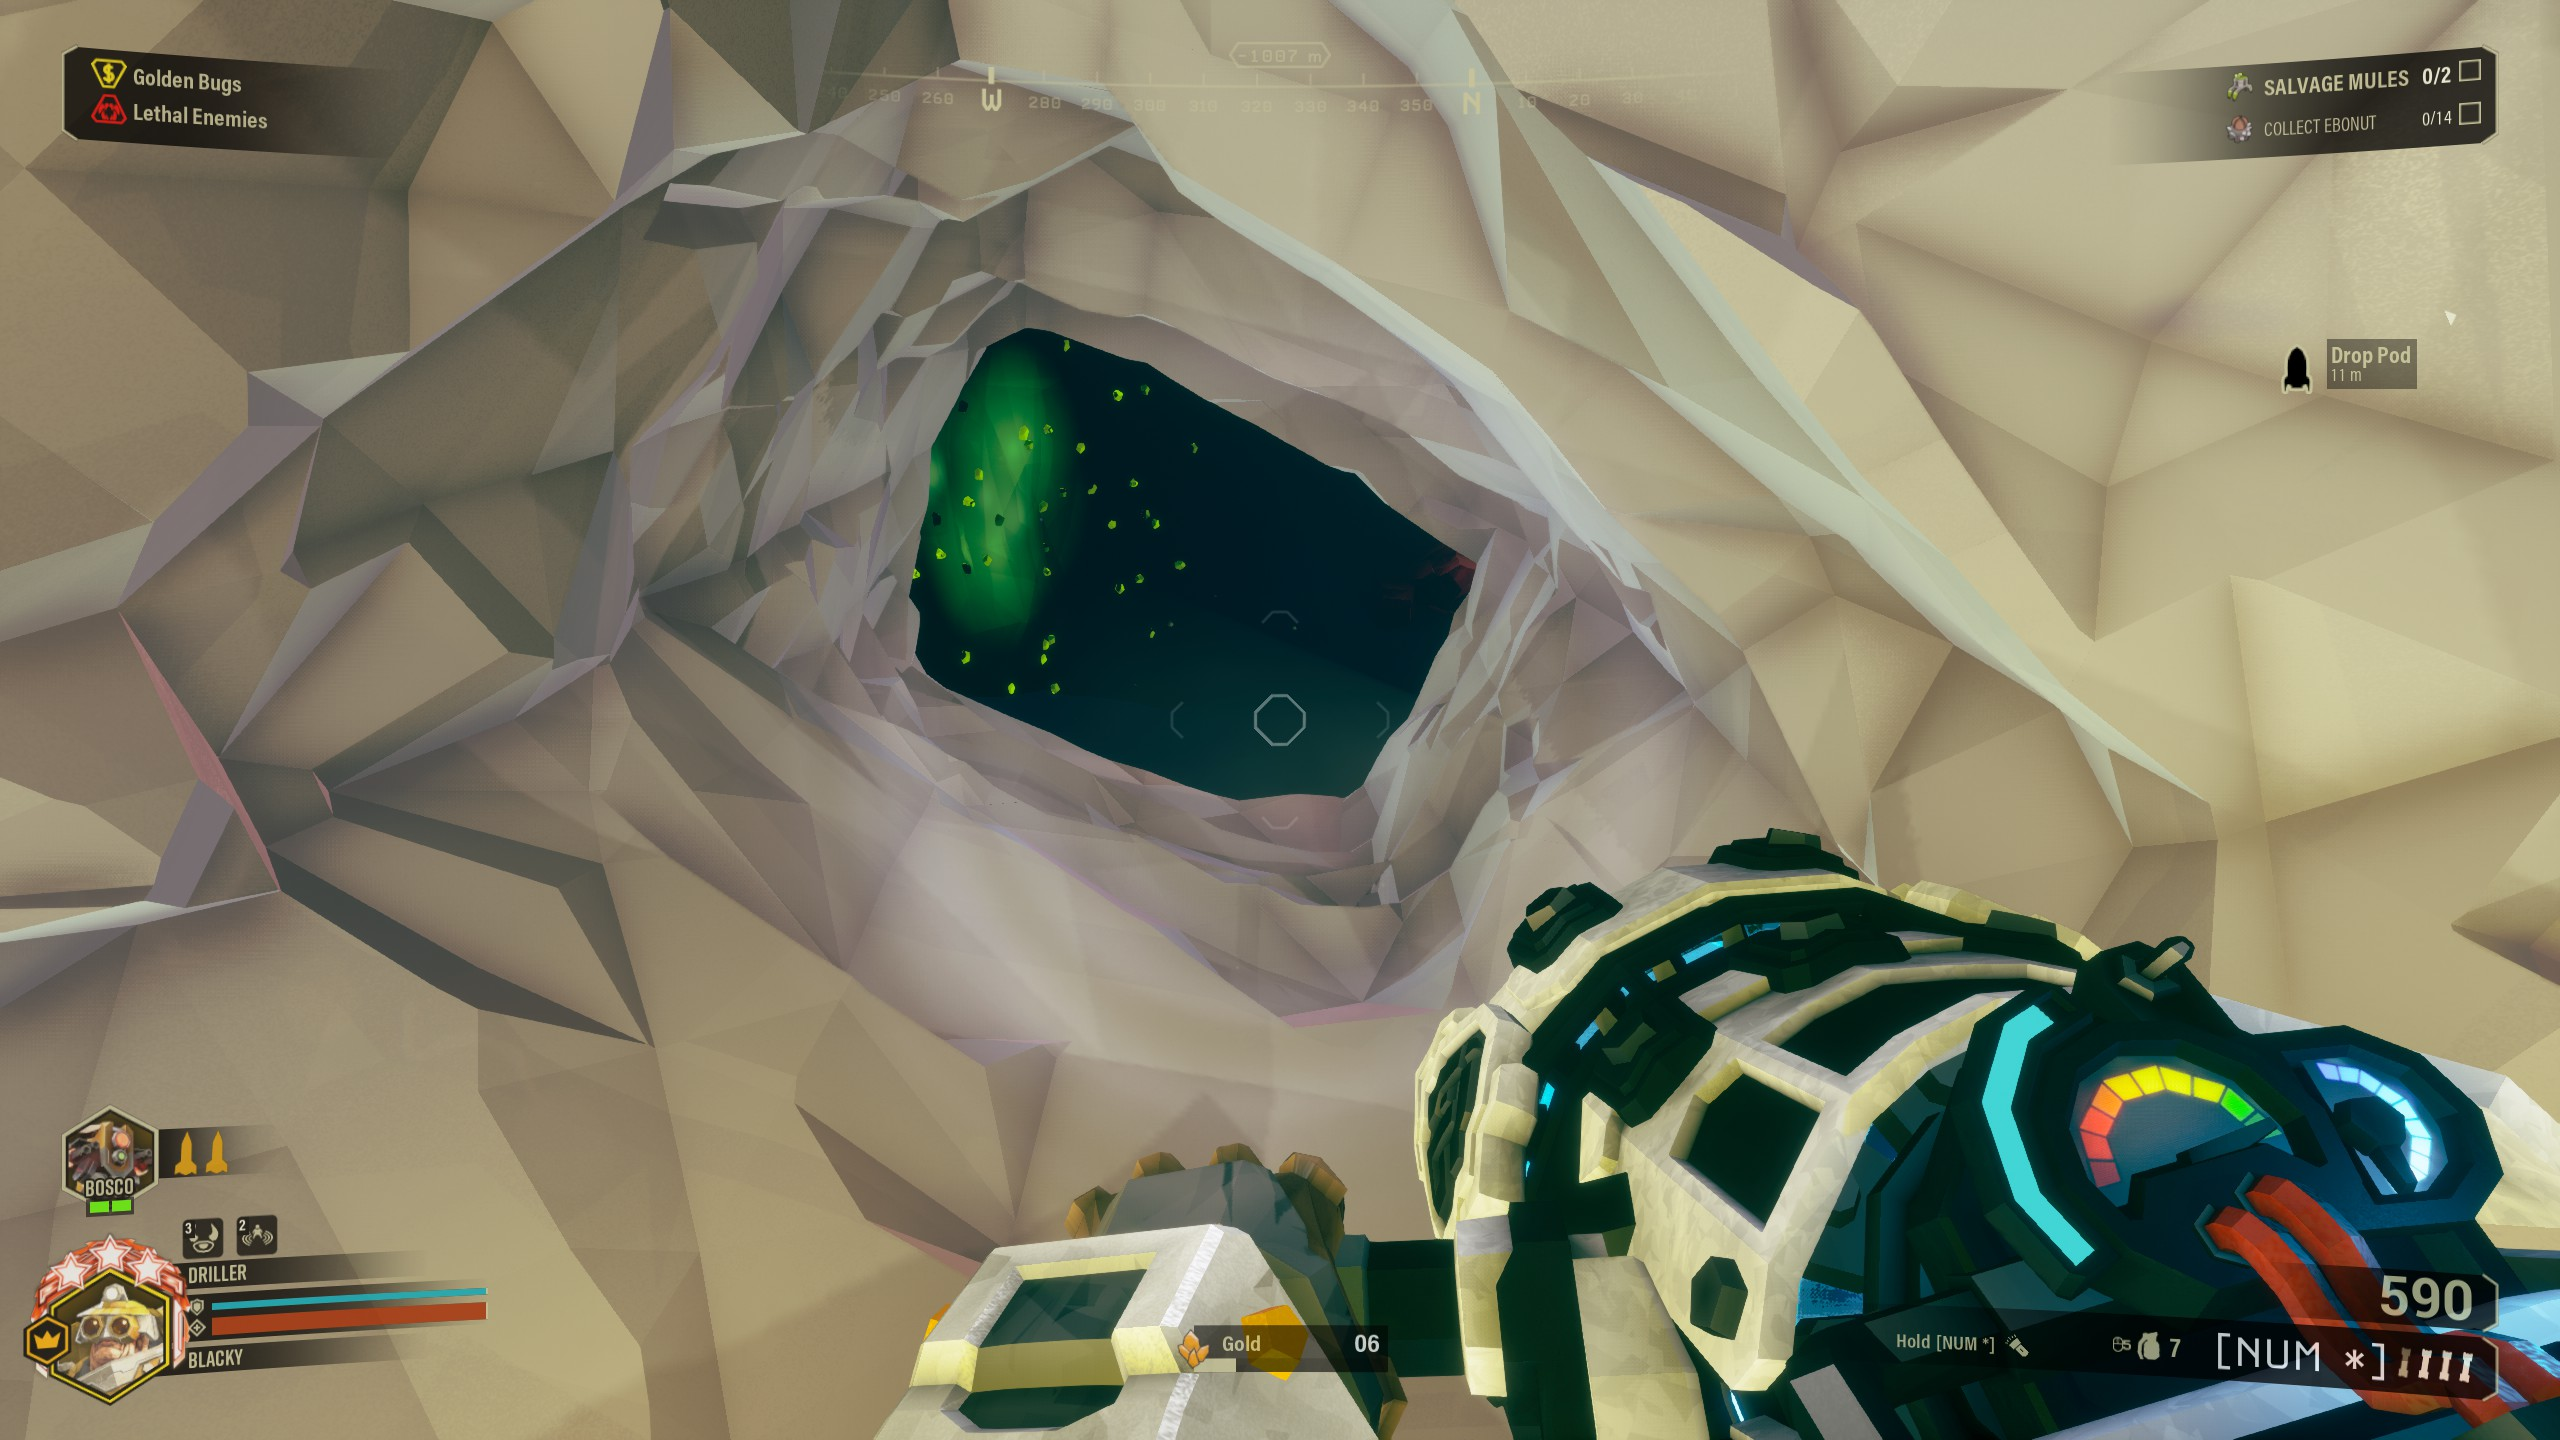 Deep Rock Galactic - Best Strategy for Building Bunker in Game - Bunker for a salvage operation - FD0F71D